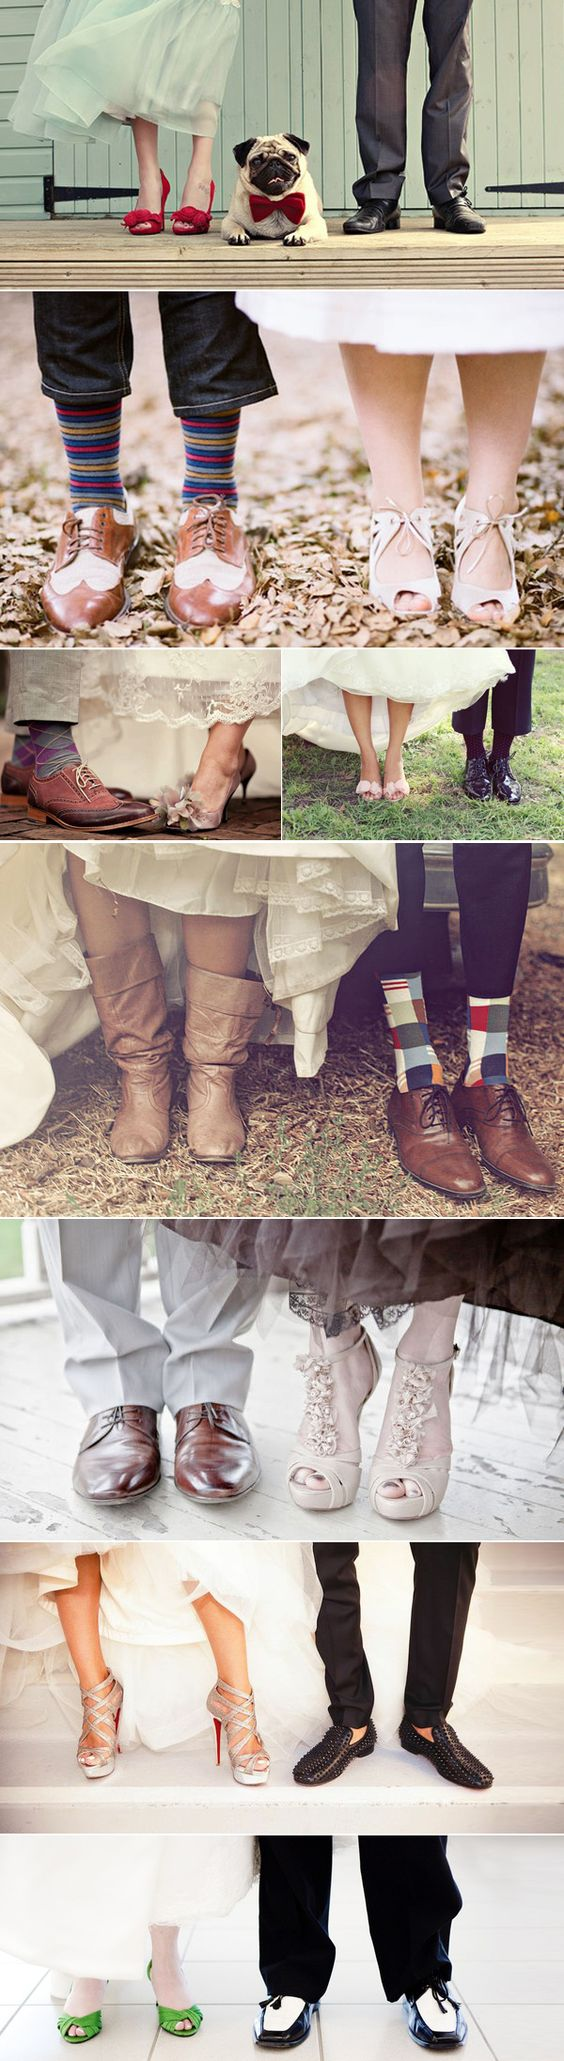 18 Lovely matching shoes - Matching styles